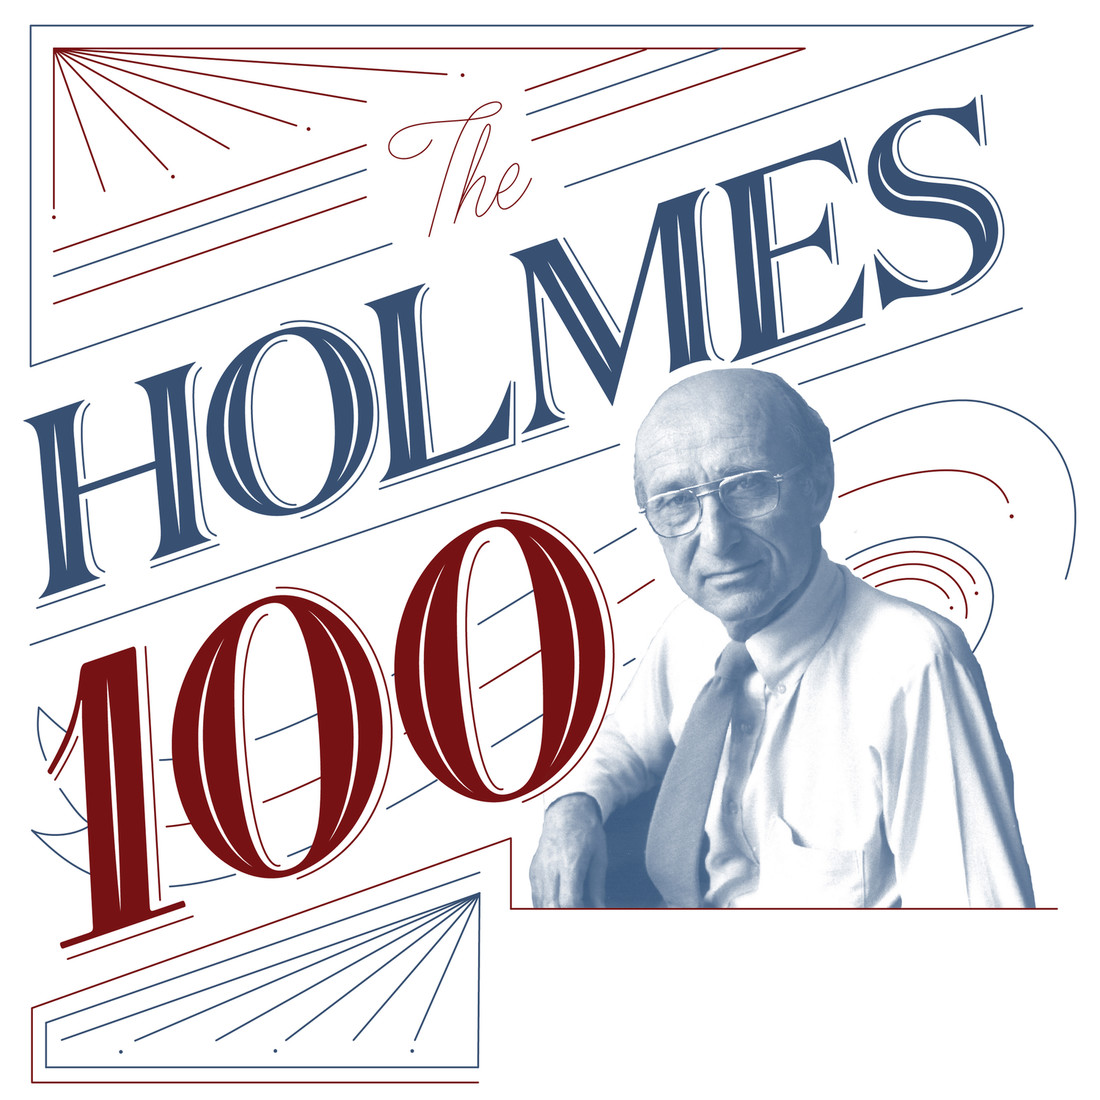 The Holmes Hundred